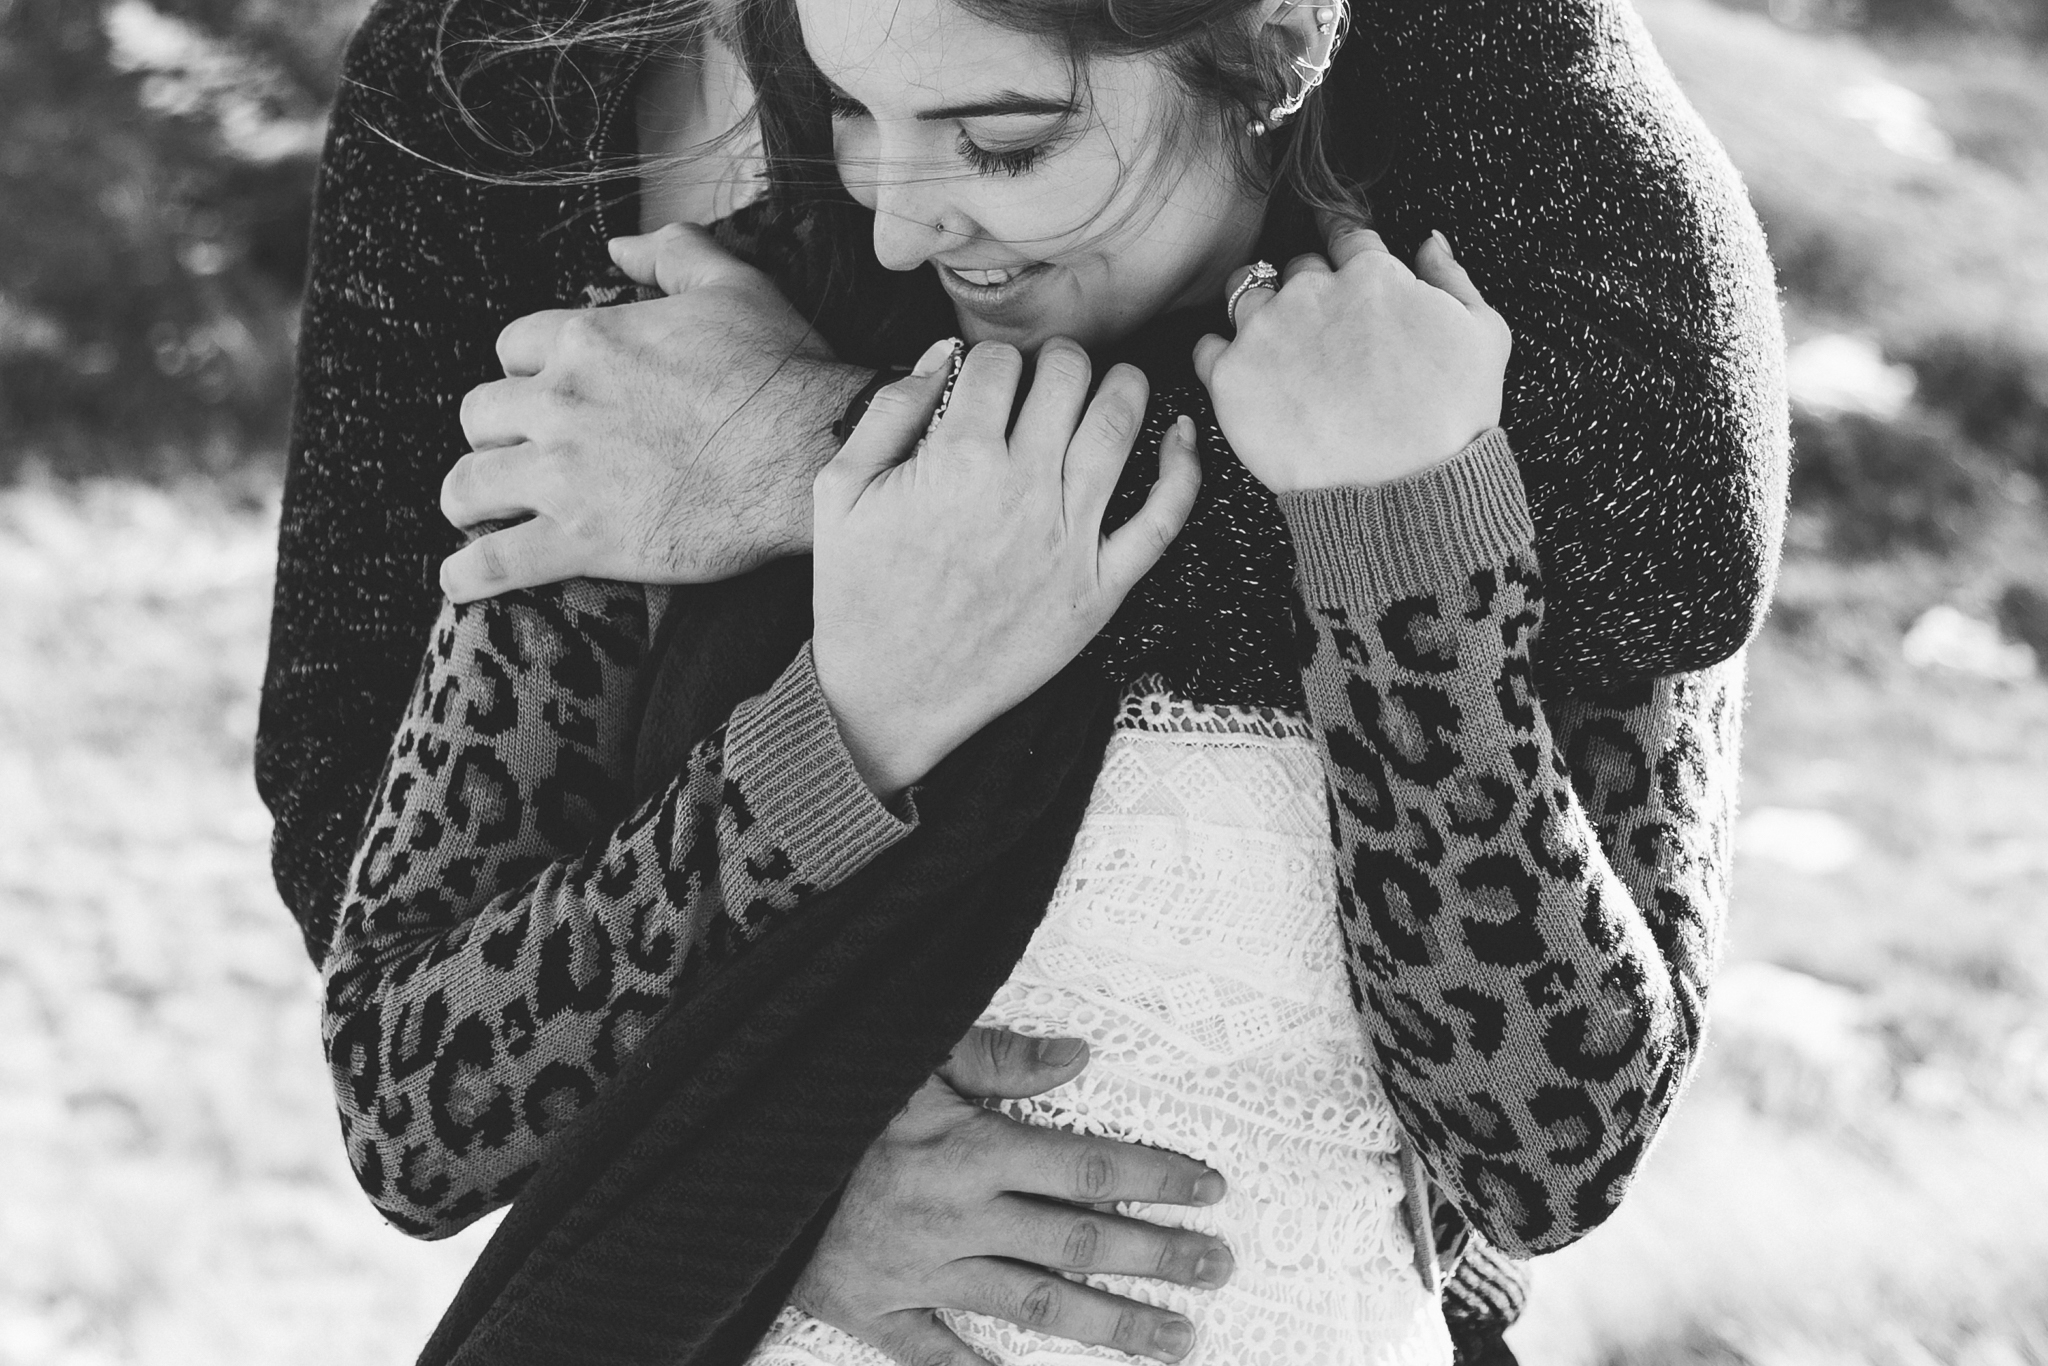 lethbridge-photographer-love-and-be-loved-photography-winter-engagement-emma-tanner-picture-image-photo-10.jpg